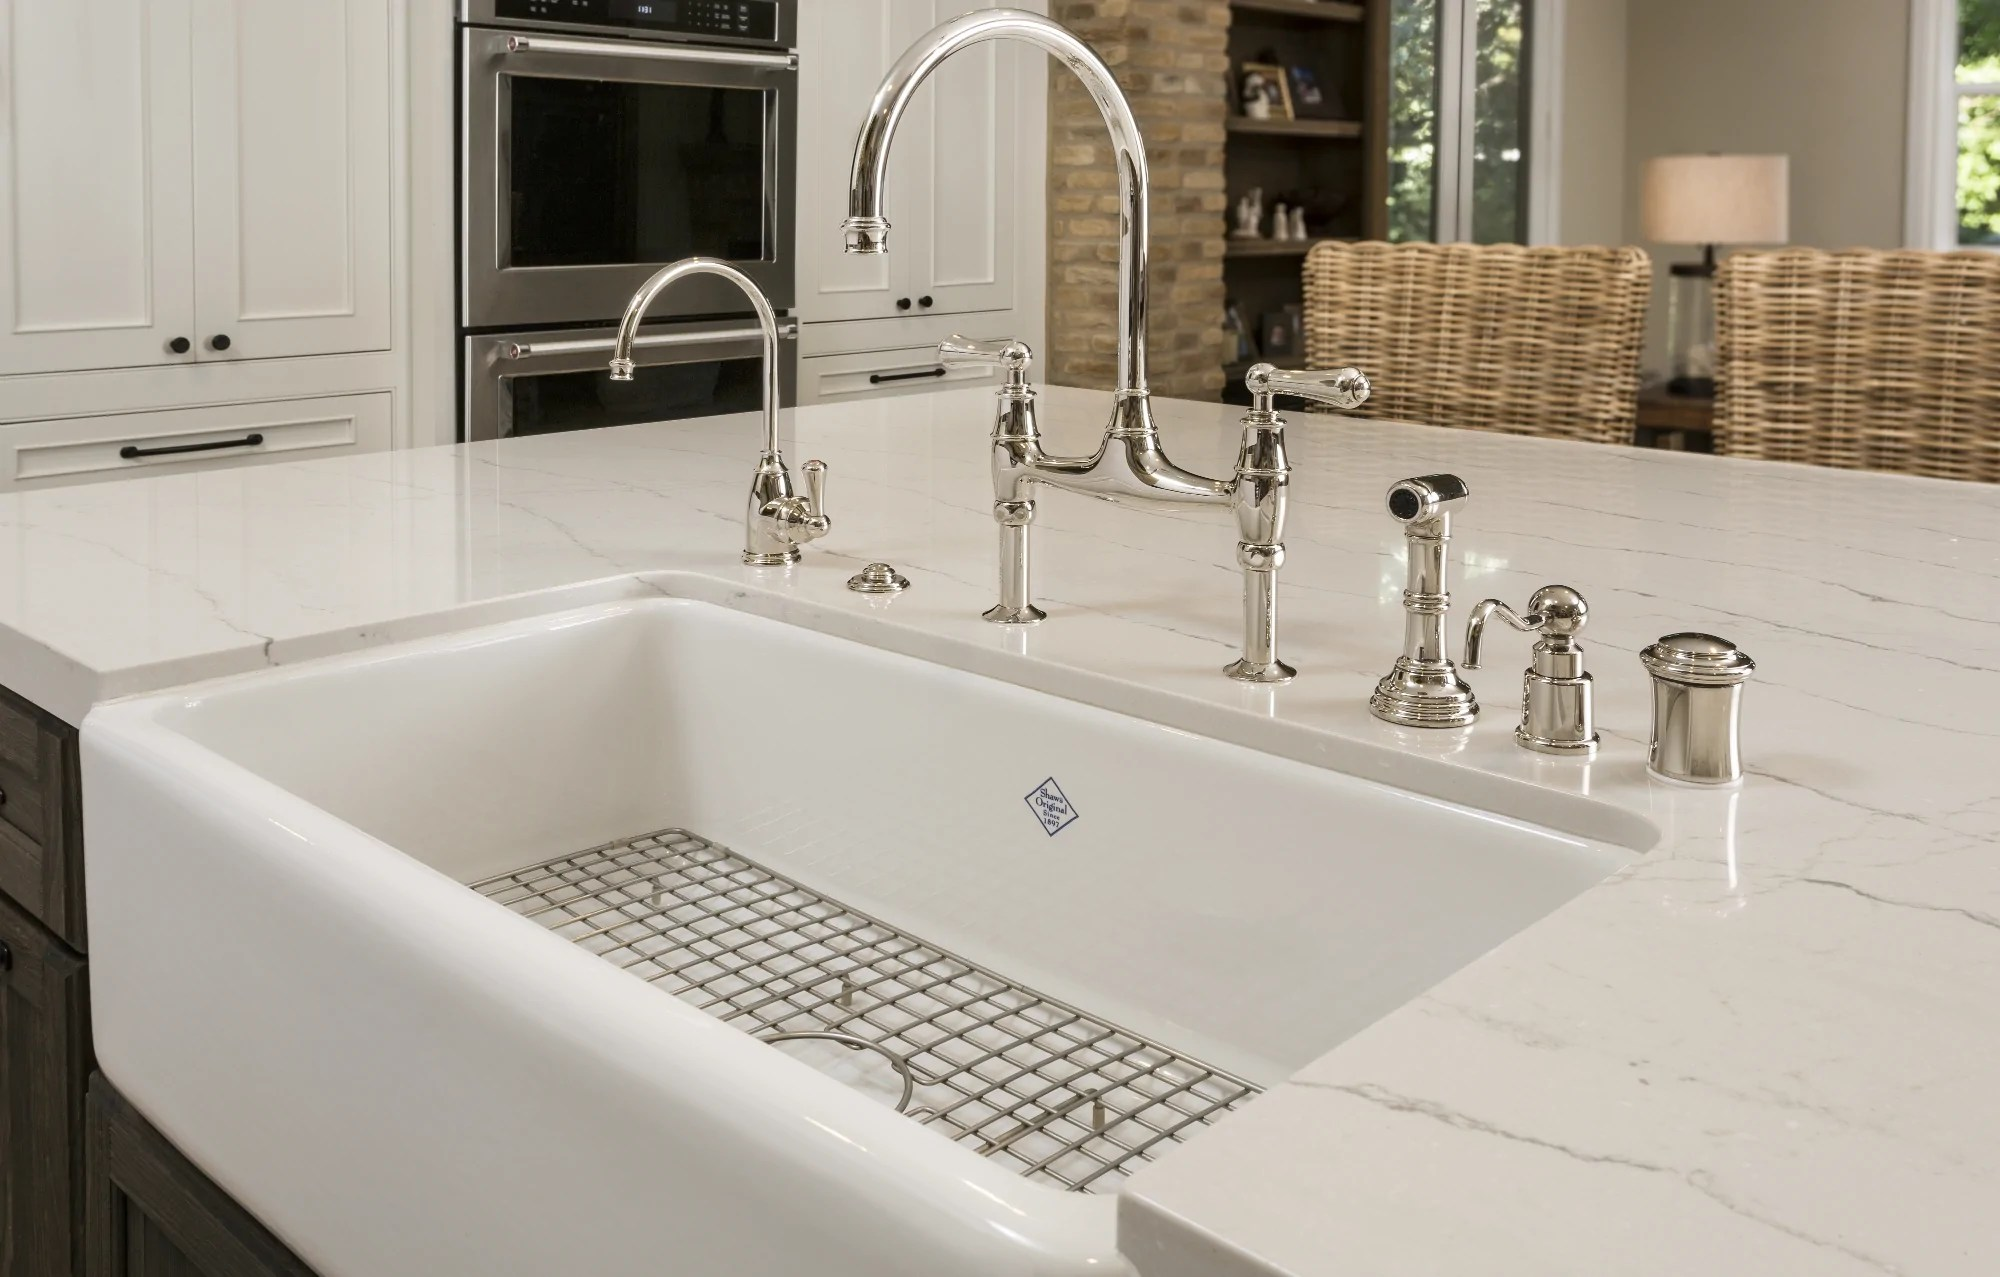 Stone Farmhouse Sink Lowest Price 6 Steps To Choosing And Installing Your Farmhouse Updated 2019